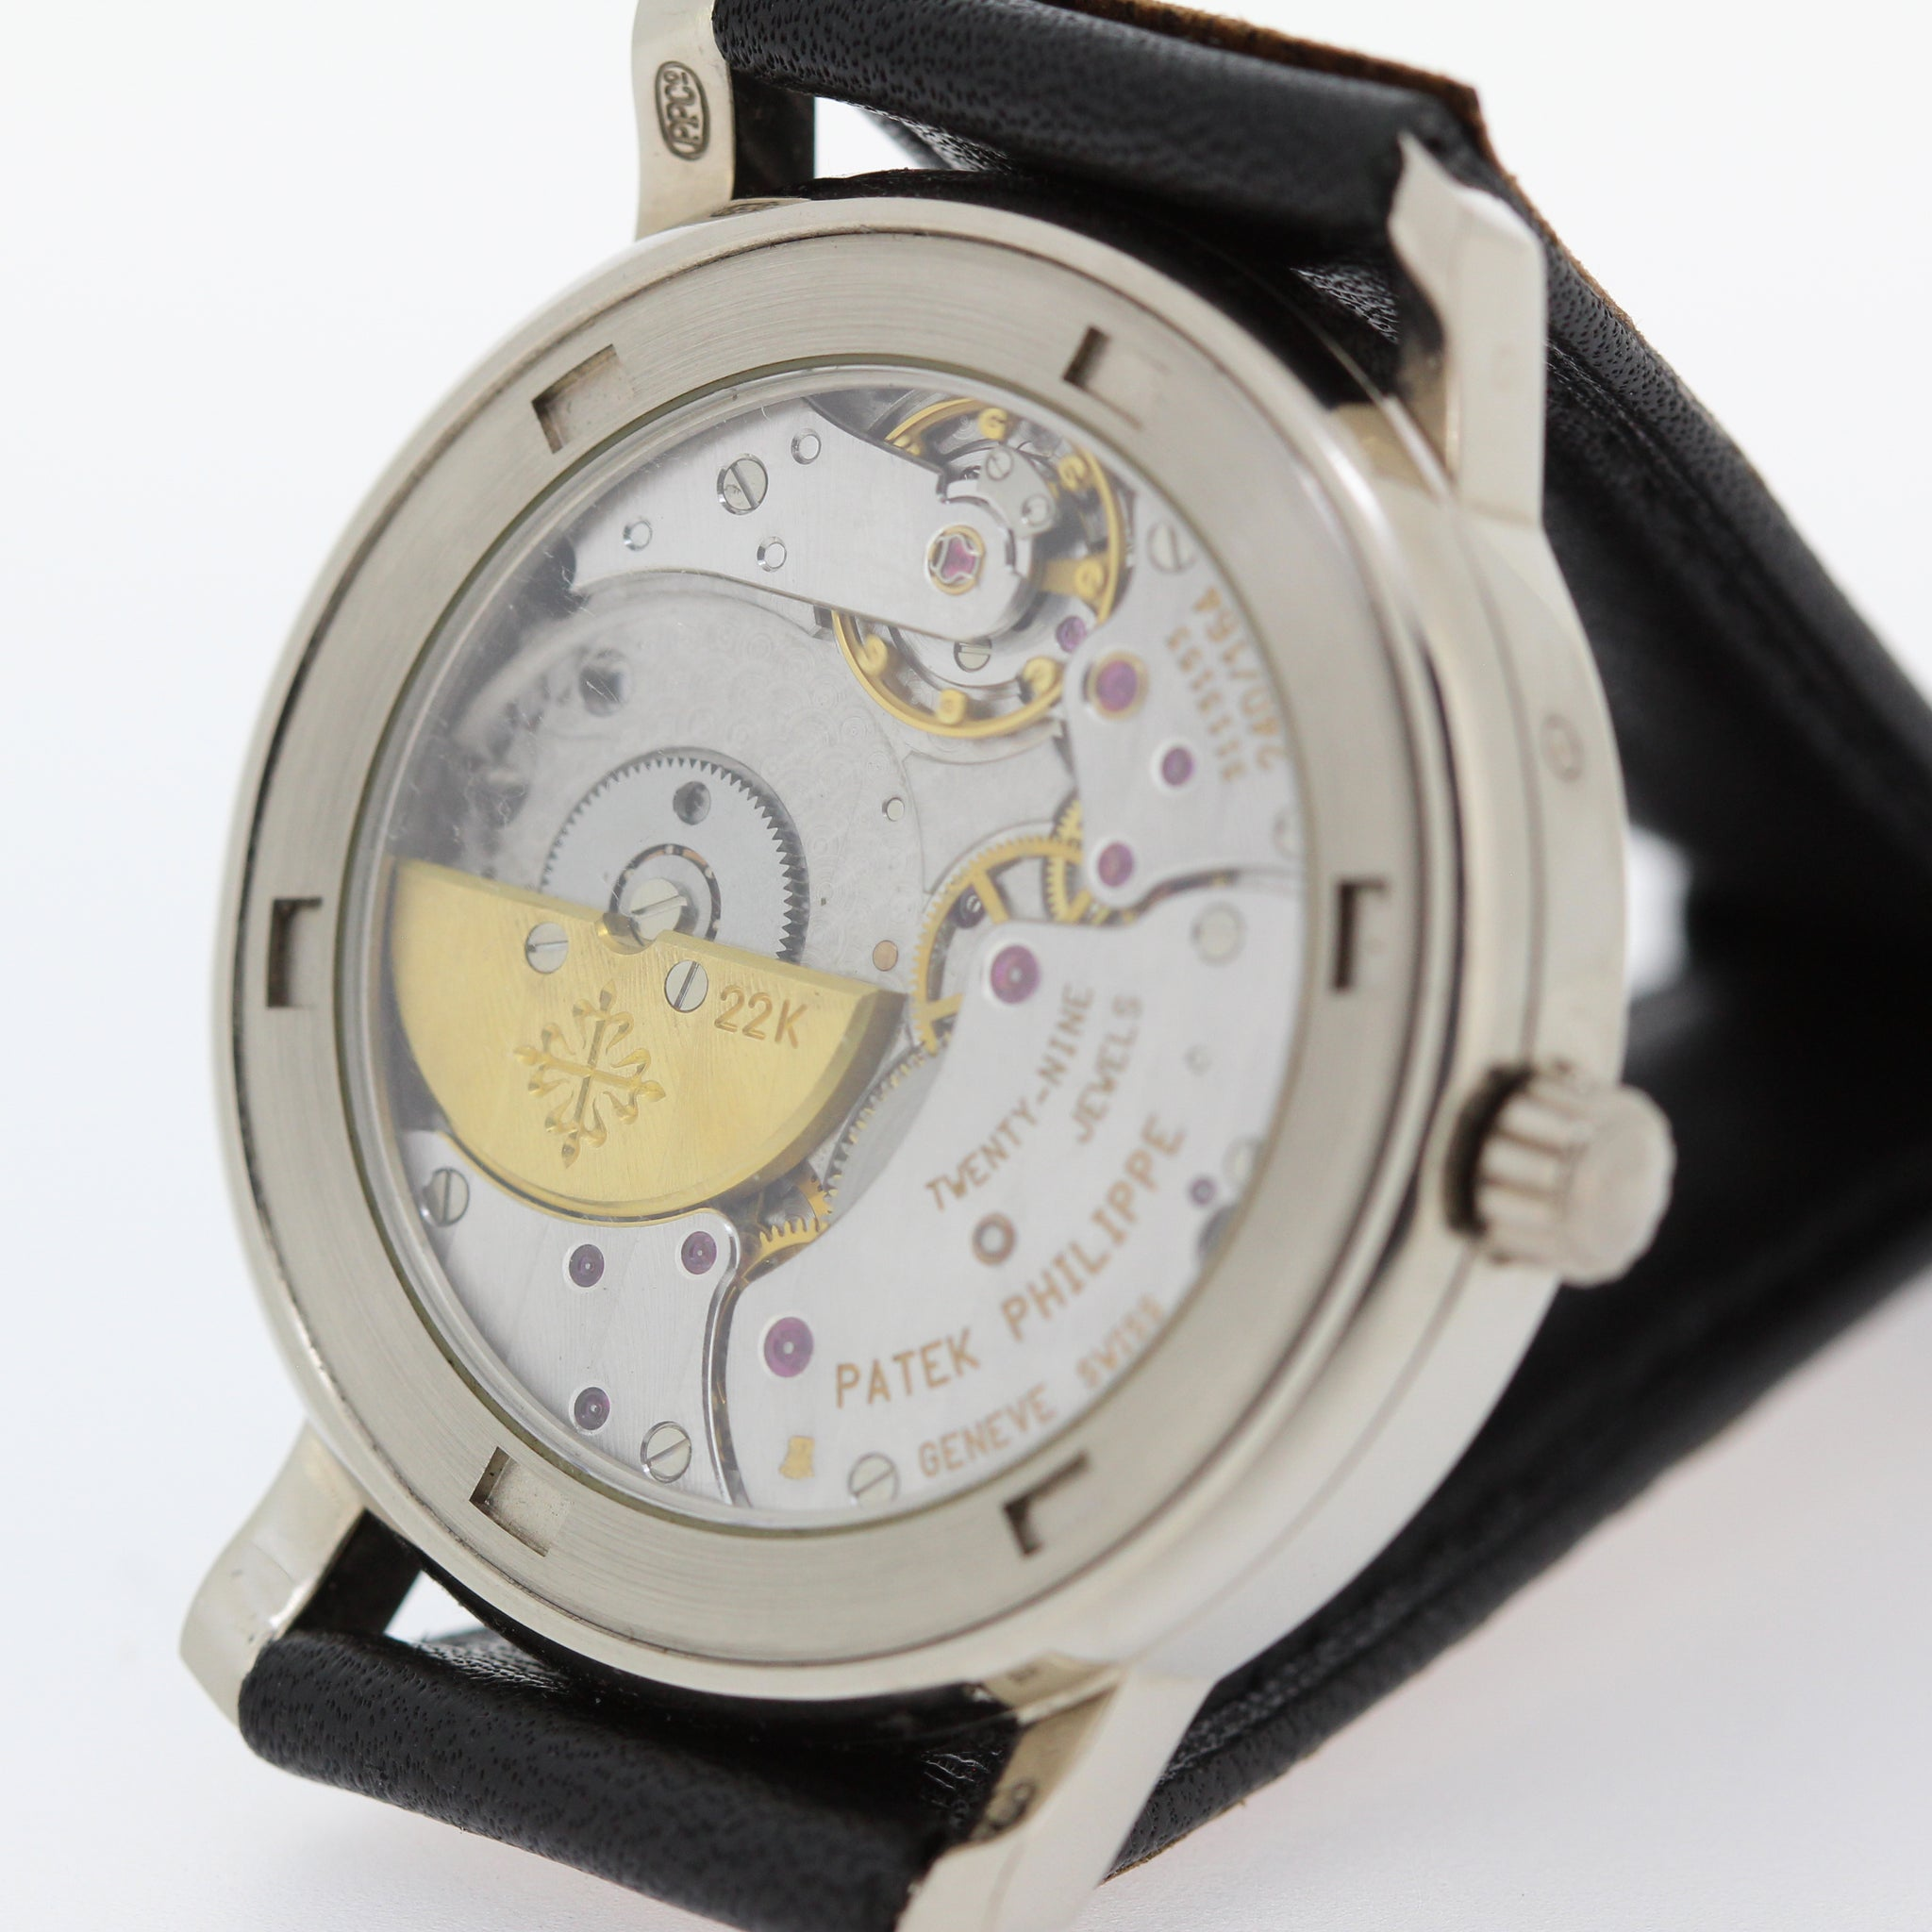 Patek Philippe 5055G Moon Phase Watch